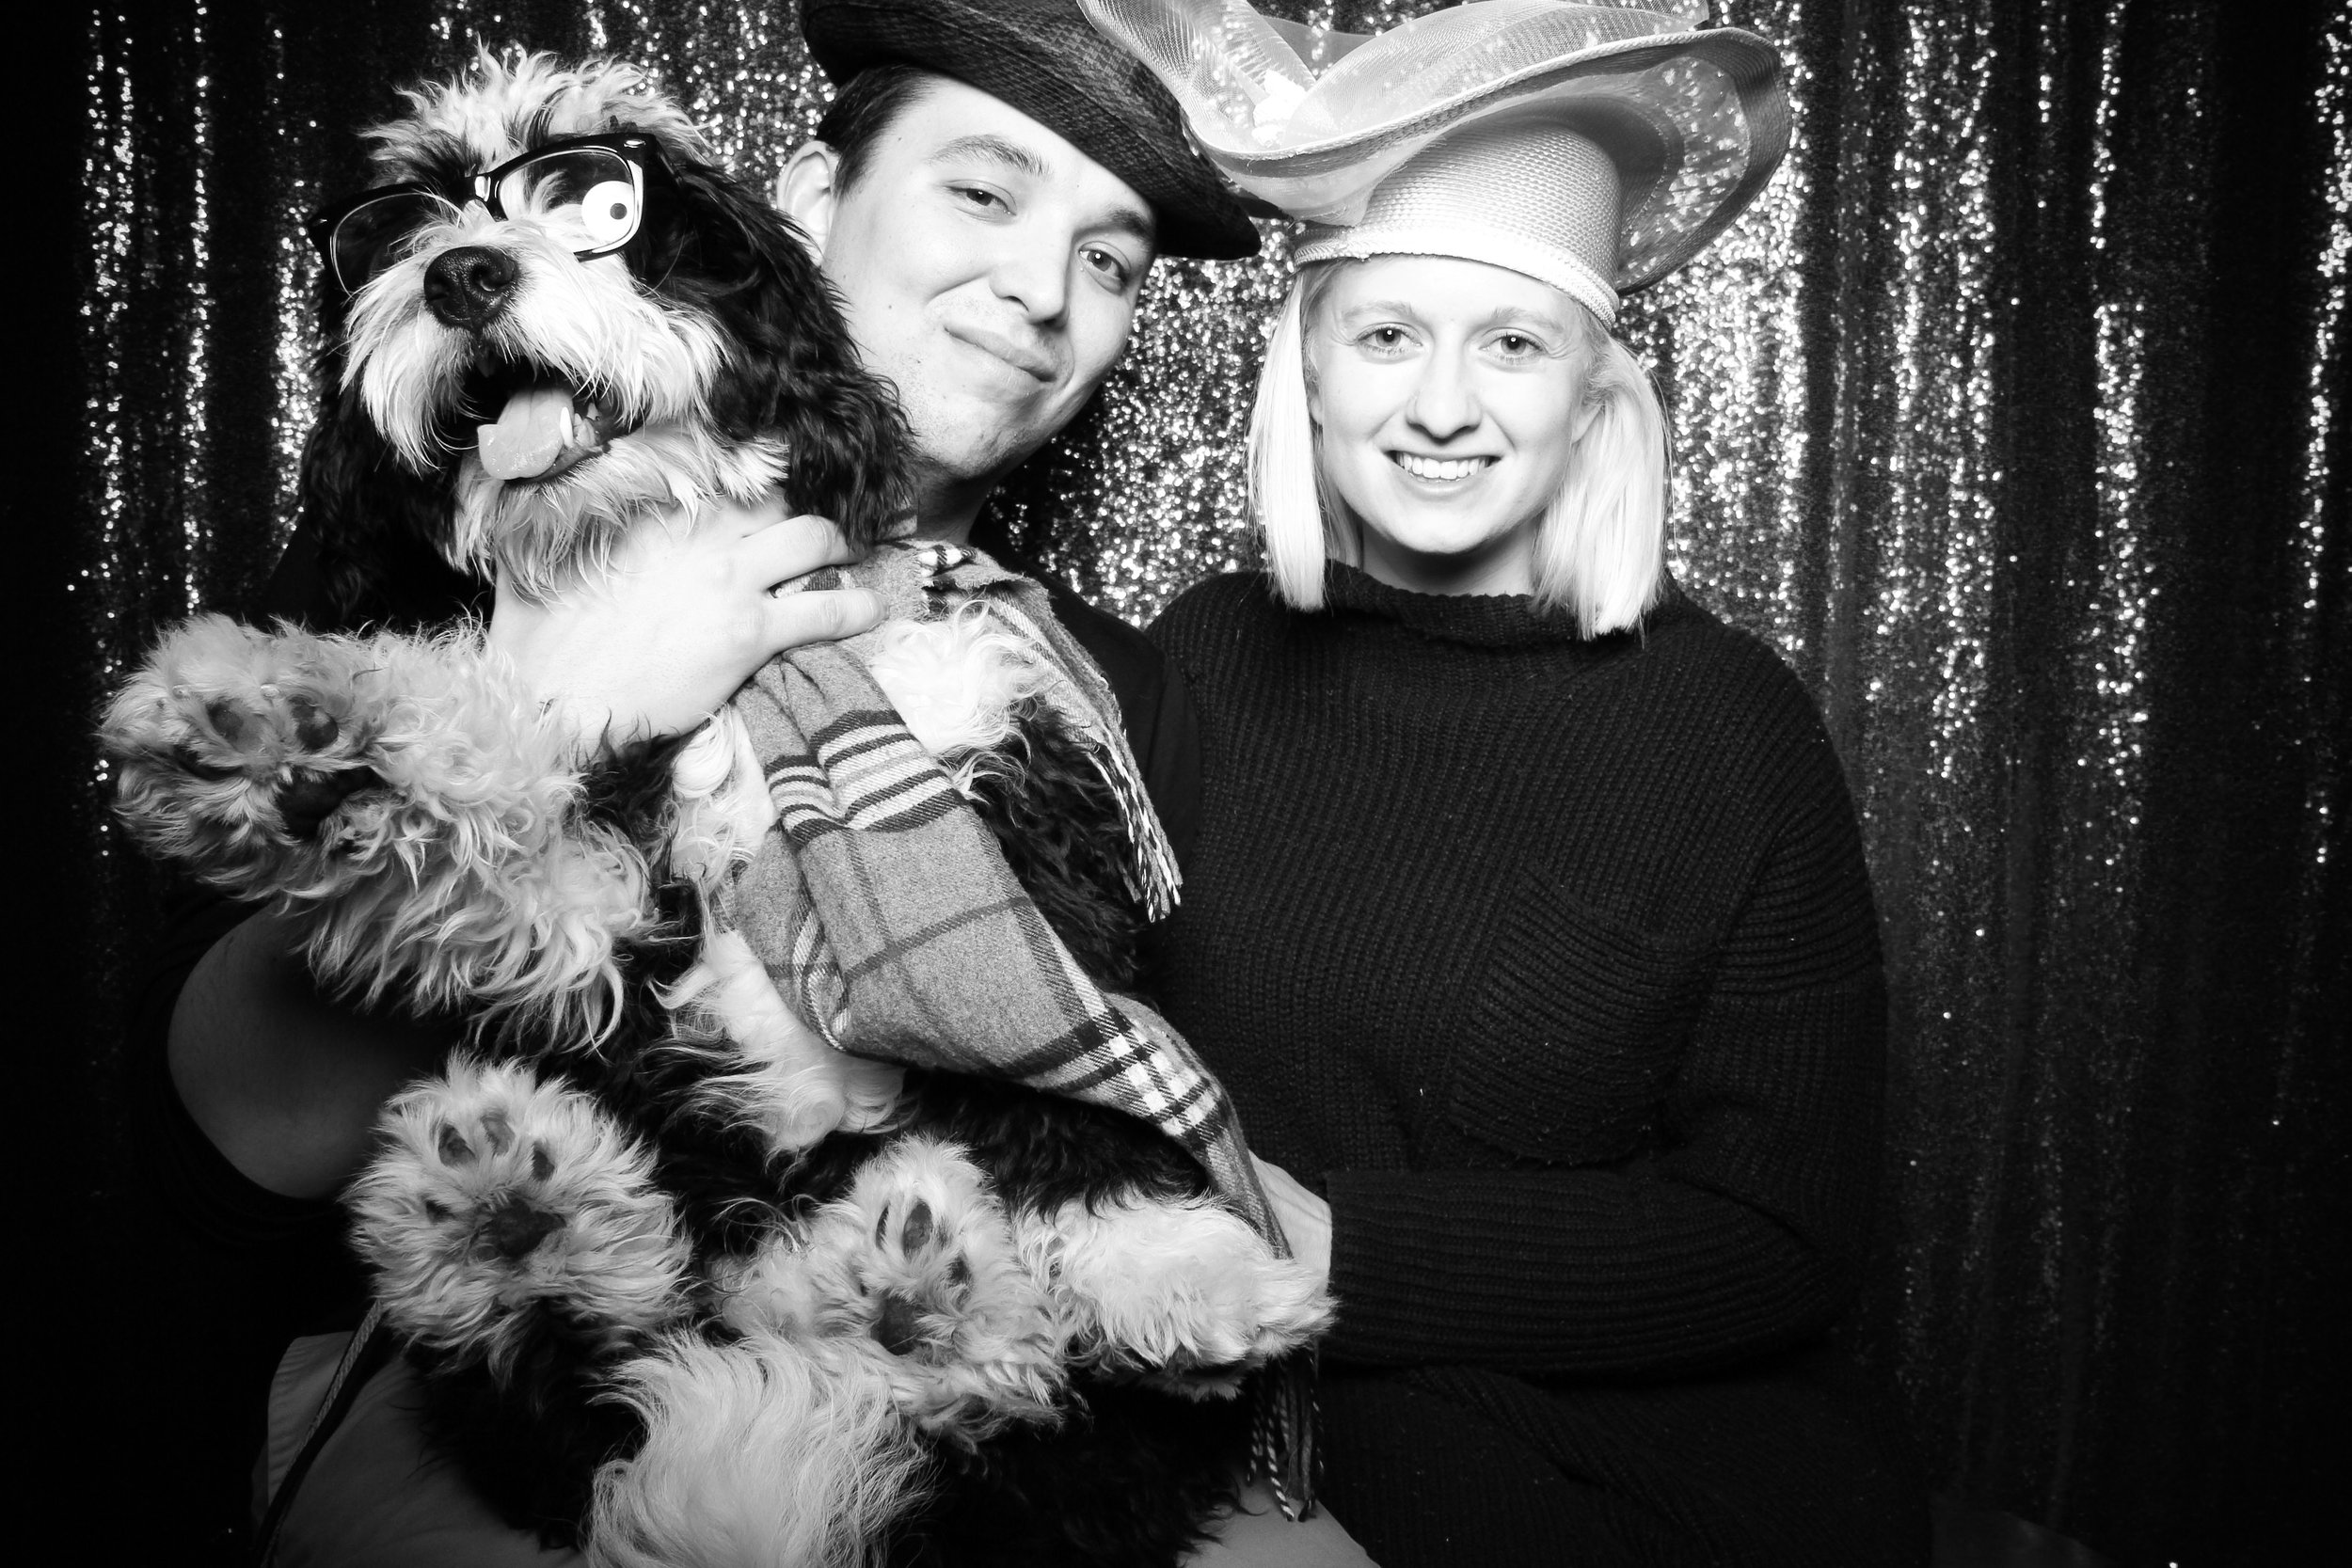 Chicago_Vintage_Photobooth_Valentines_Day_Dog_04.jpg